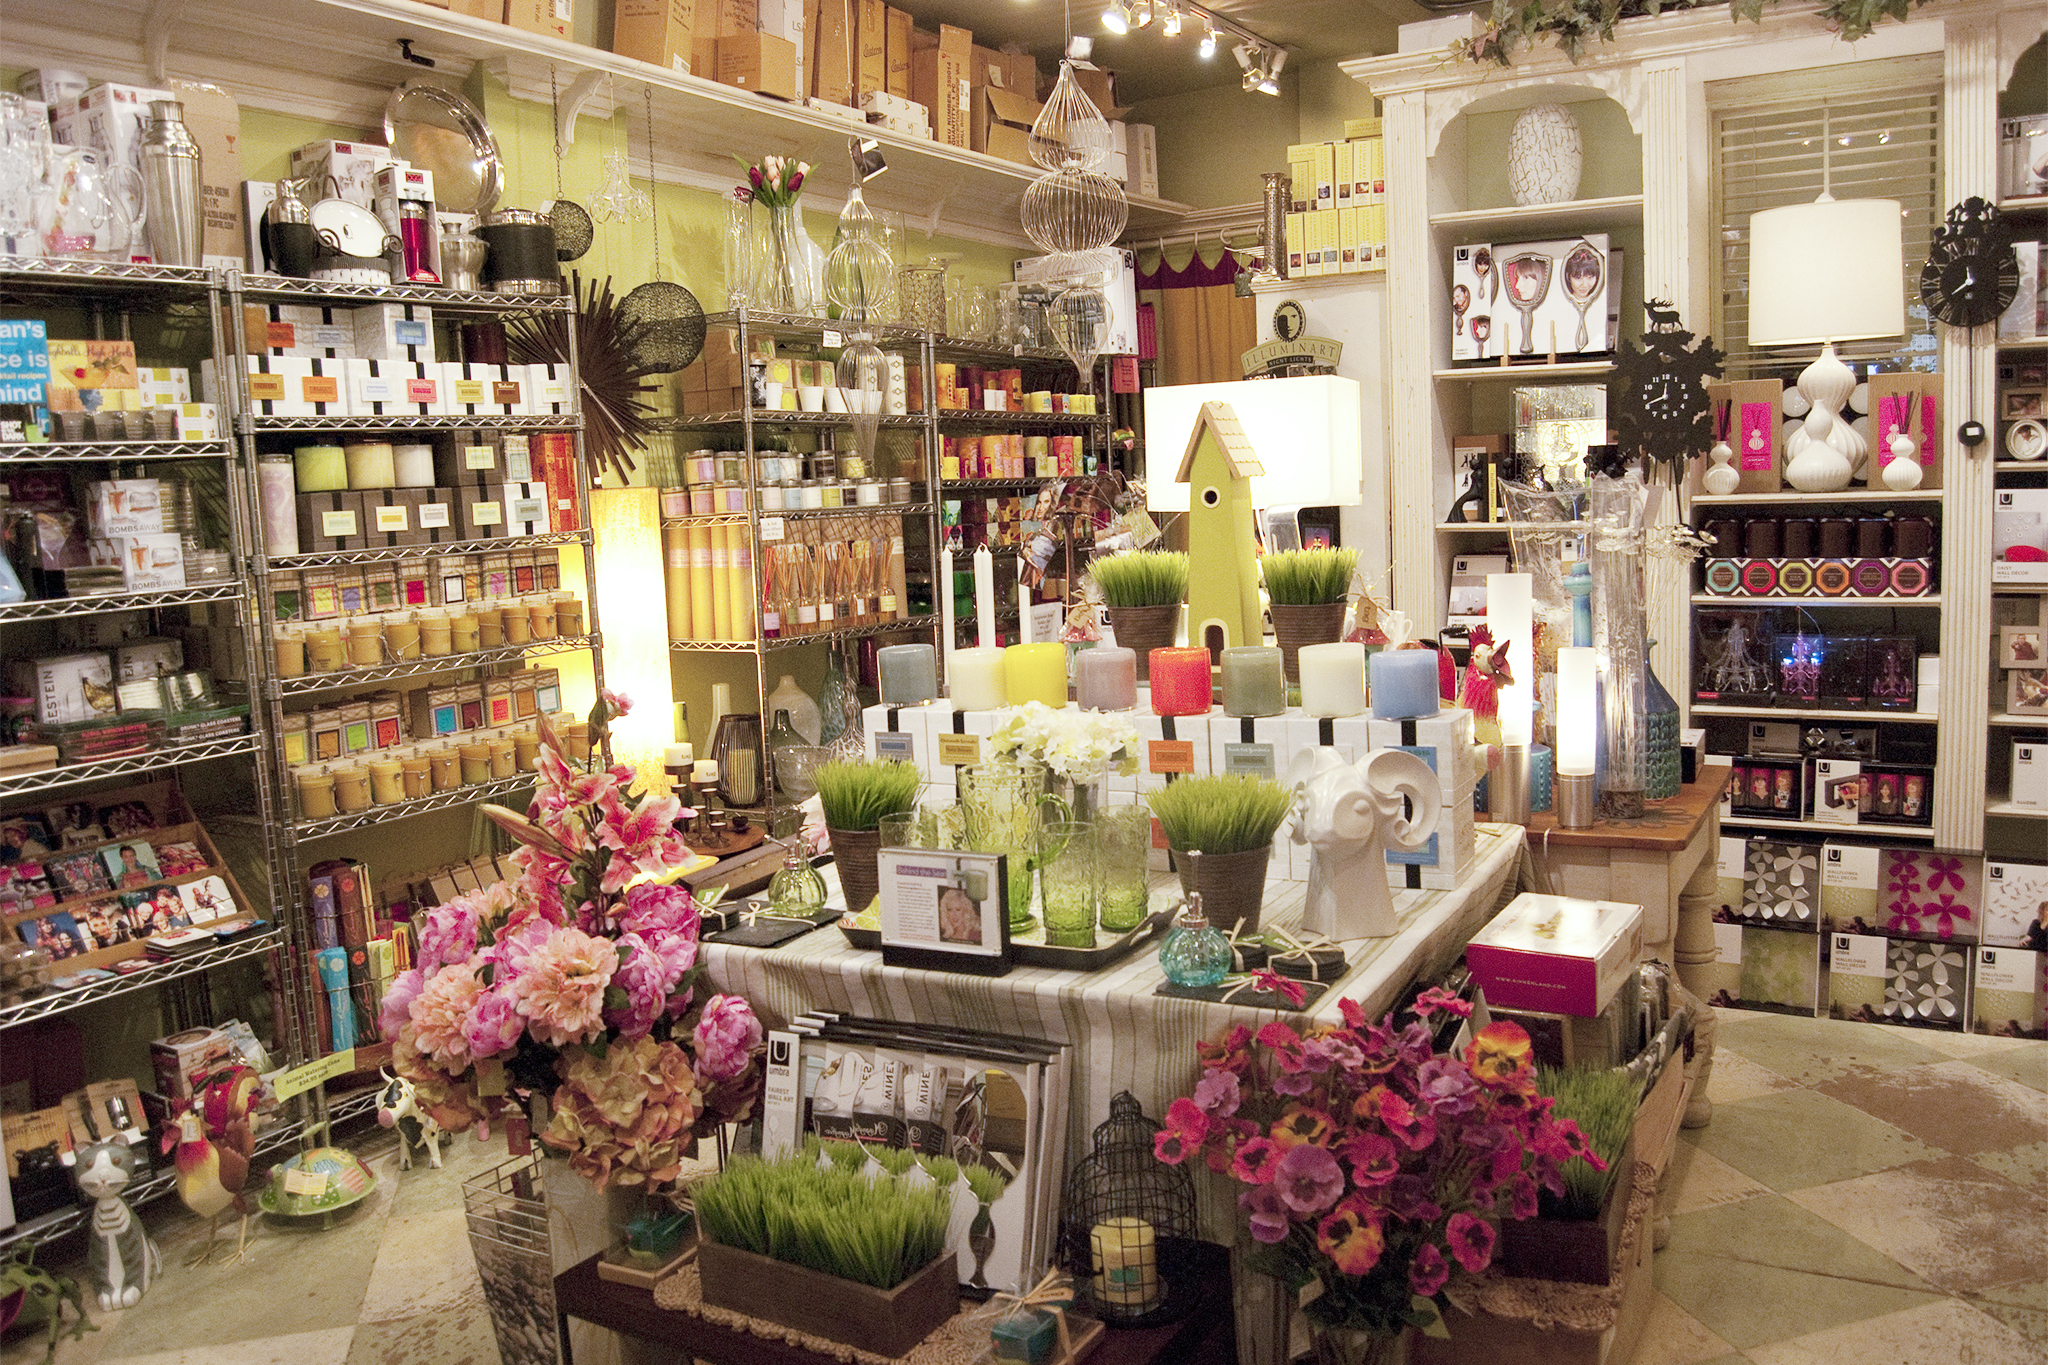 Home Decor Stores In NYC For Decorating Ideas And Home